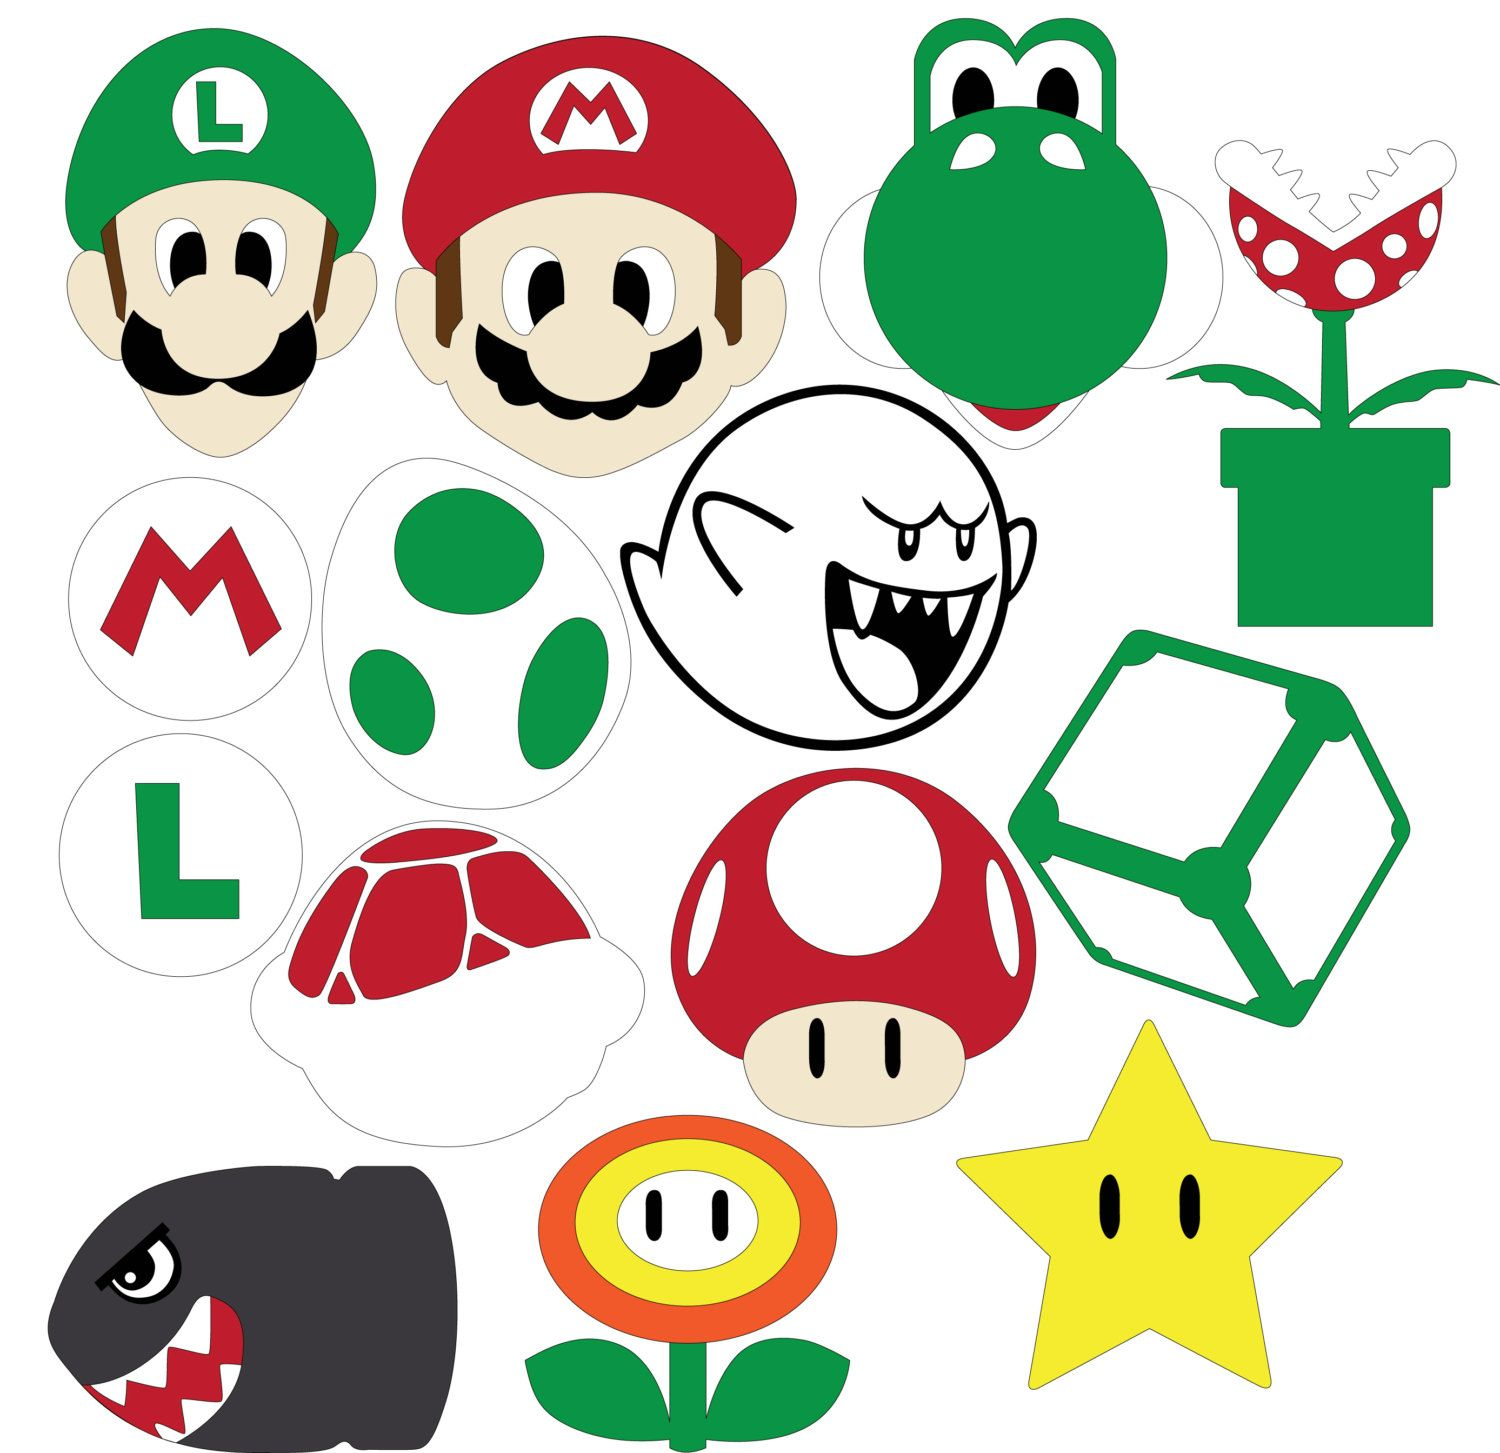 Mario clipart svg. Party dxf files cartoon